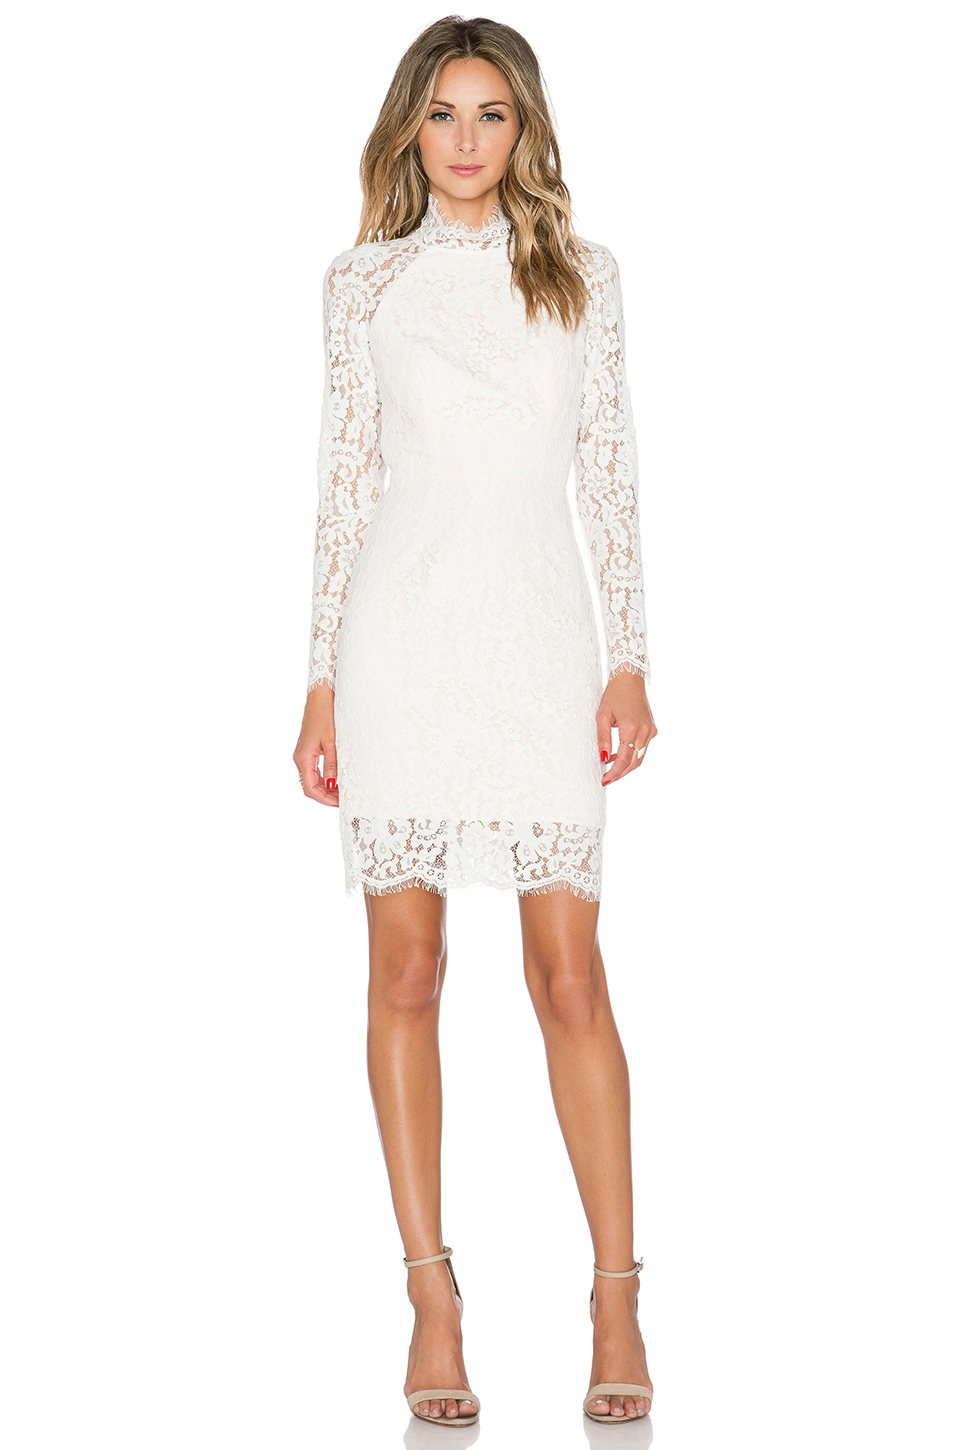 One night long sleeve lace dress